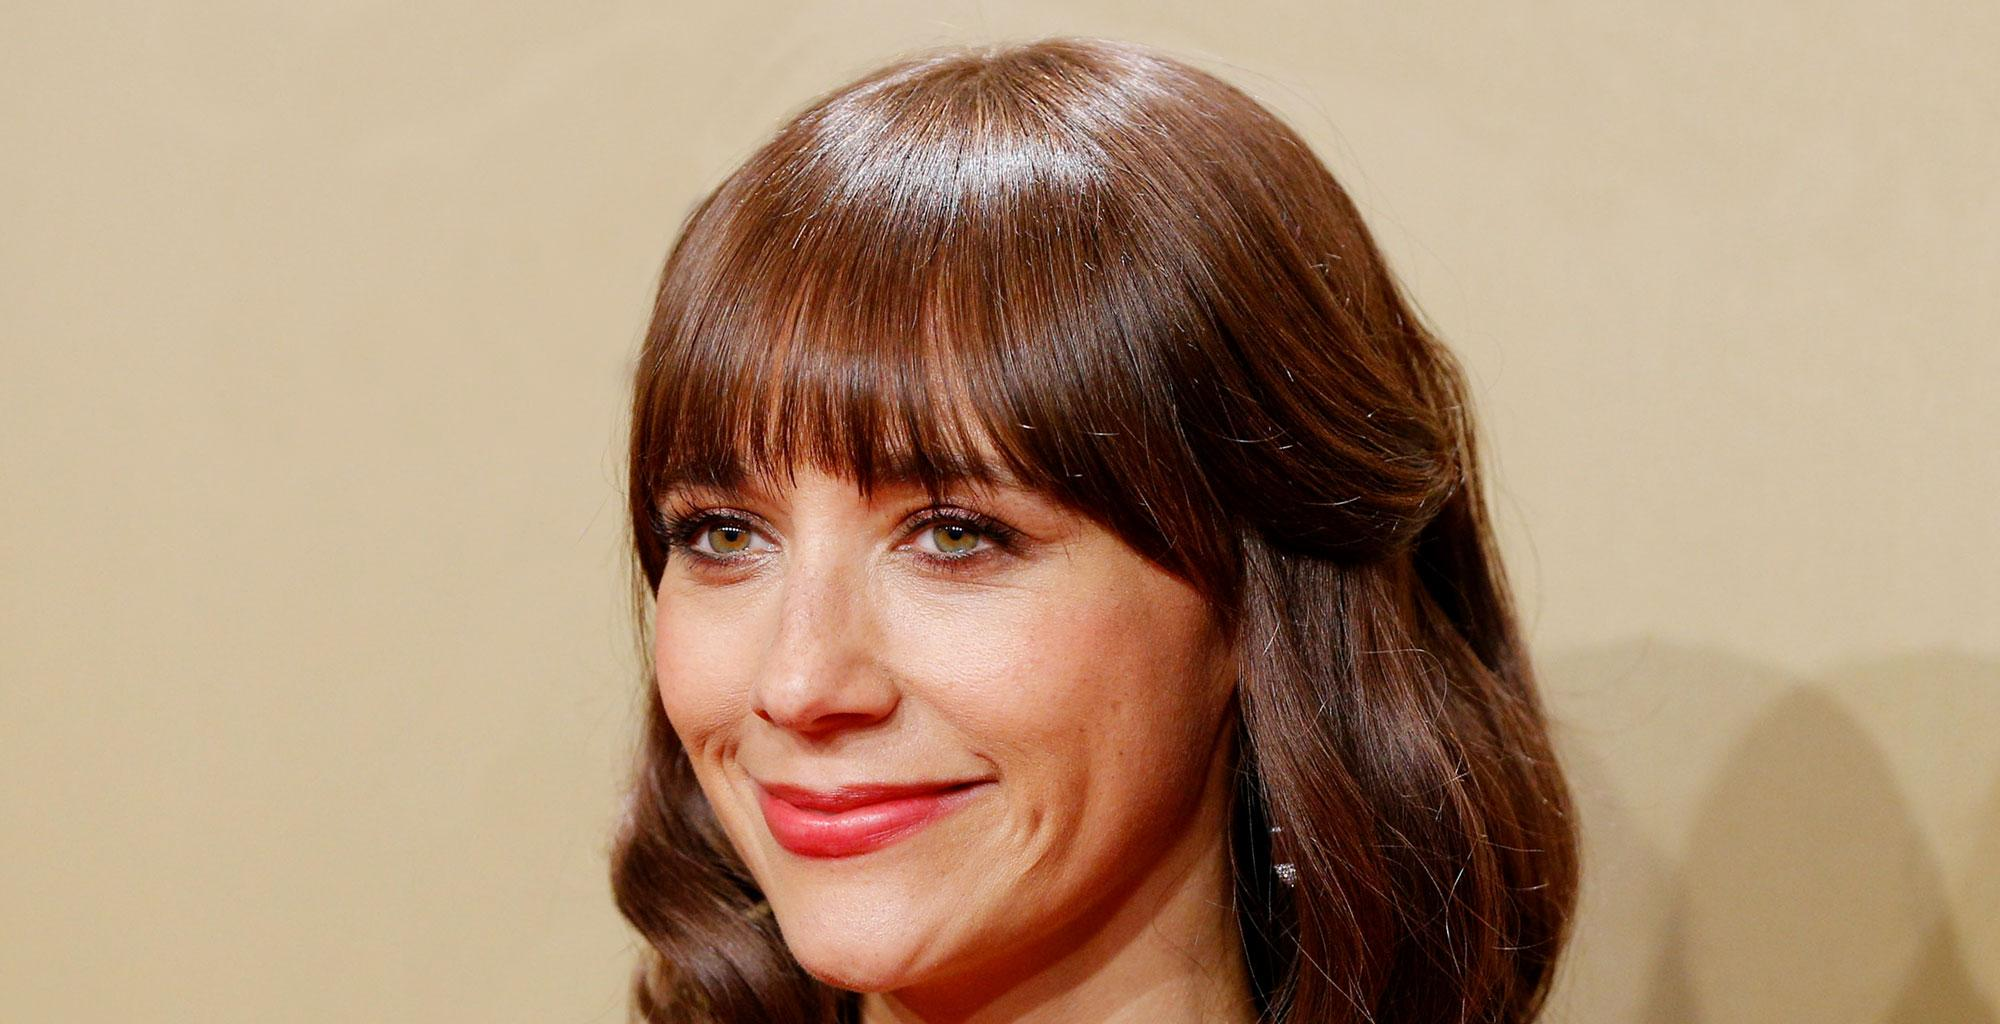 Rashida Jones Reveals She Nearly Quit Working In The Entertainment Business - Here's Why